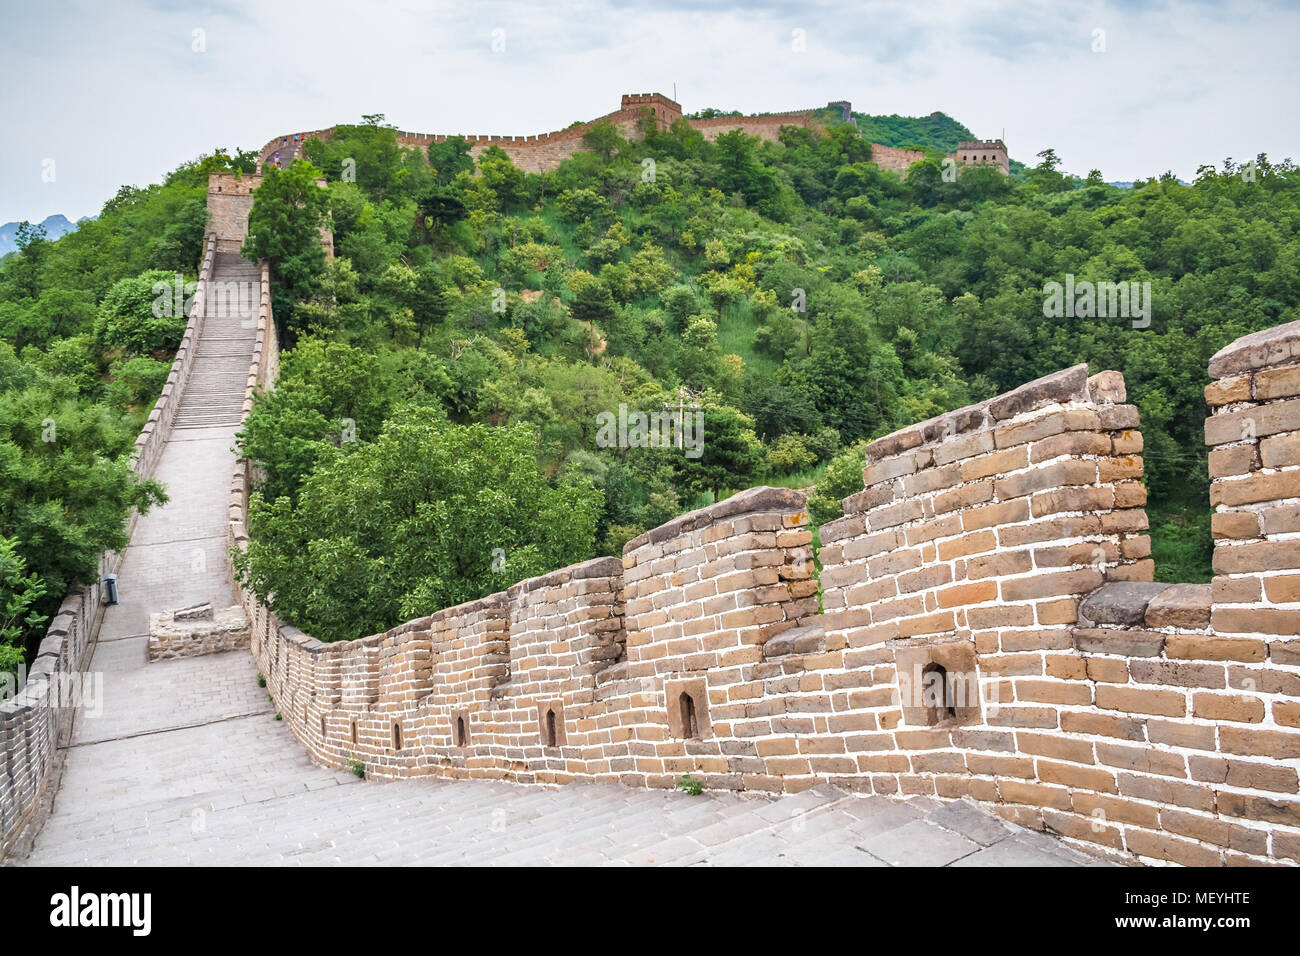 Beijing, China, the majestic Great Wall. - Stock Image